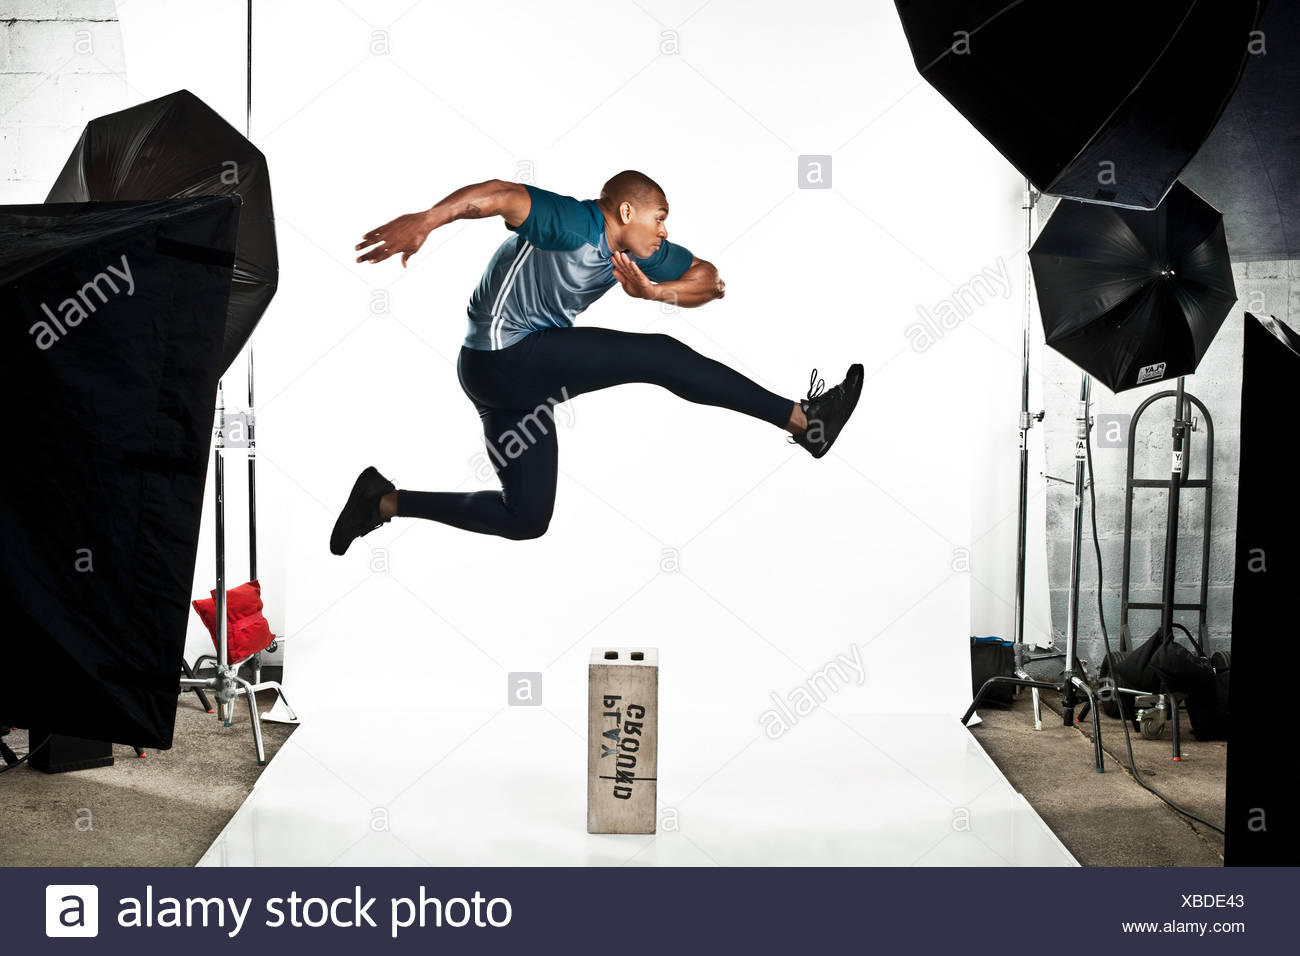 Athlete at photo shoot, jumping - Stock Image